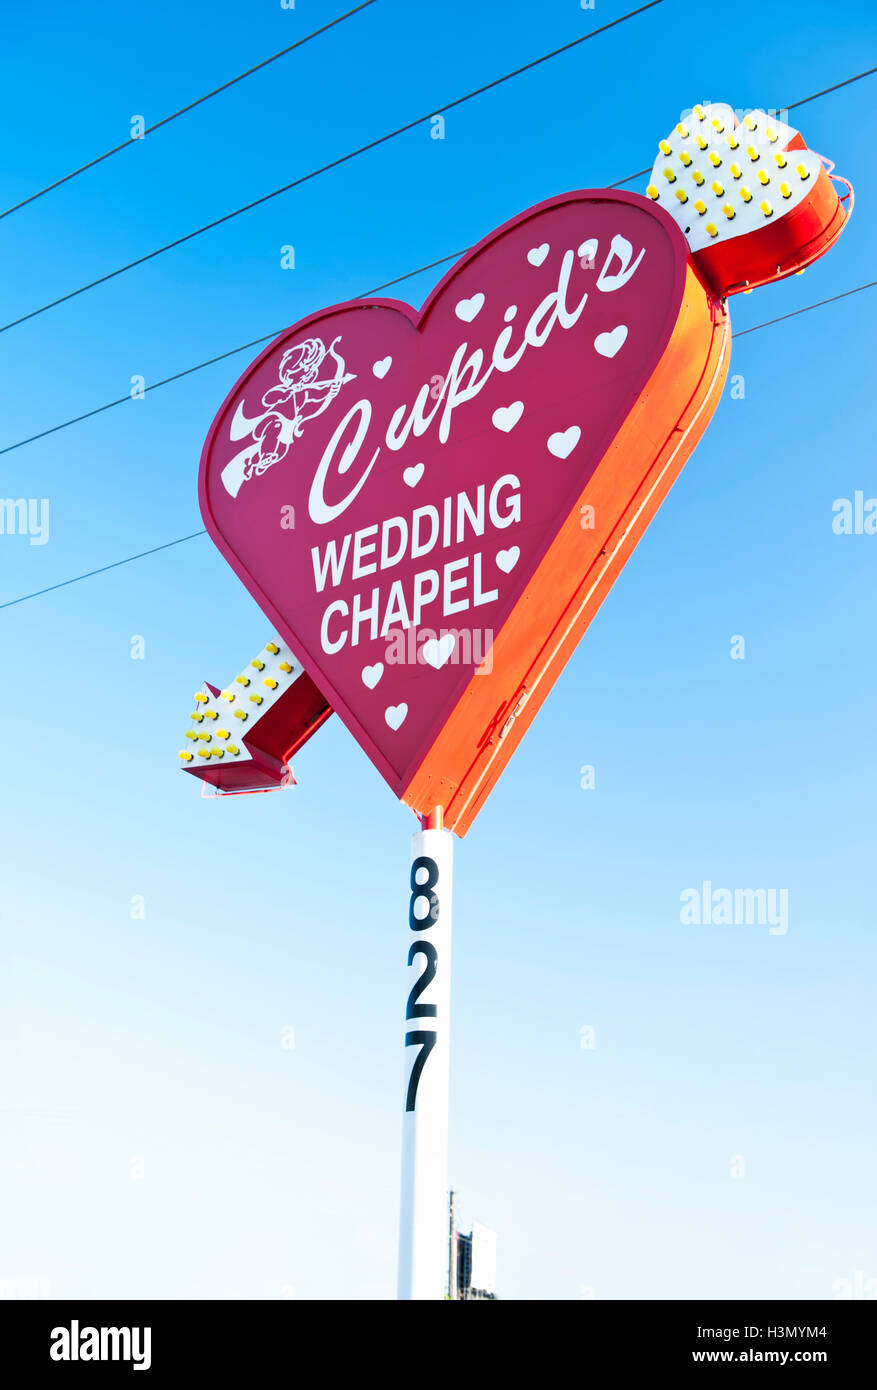 Cupids Wedding Chapel Downtown Las Vegas On Corner Of Blvd And Hoover Ave